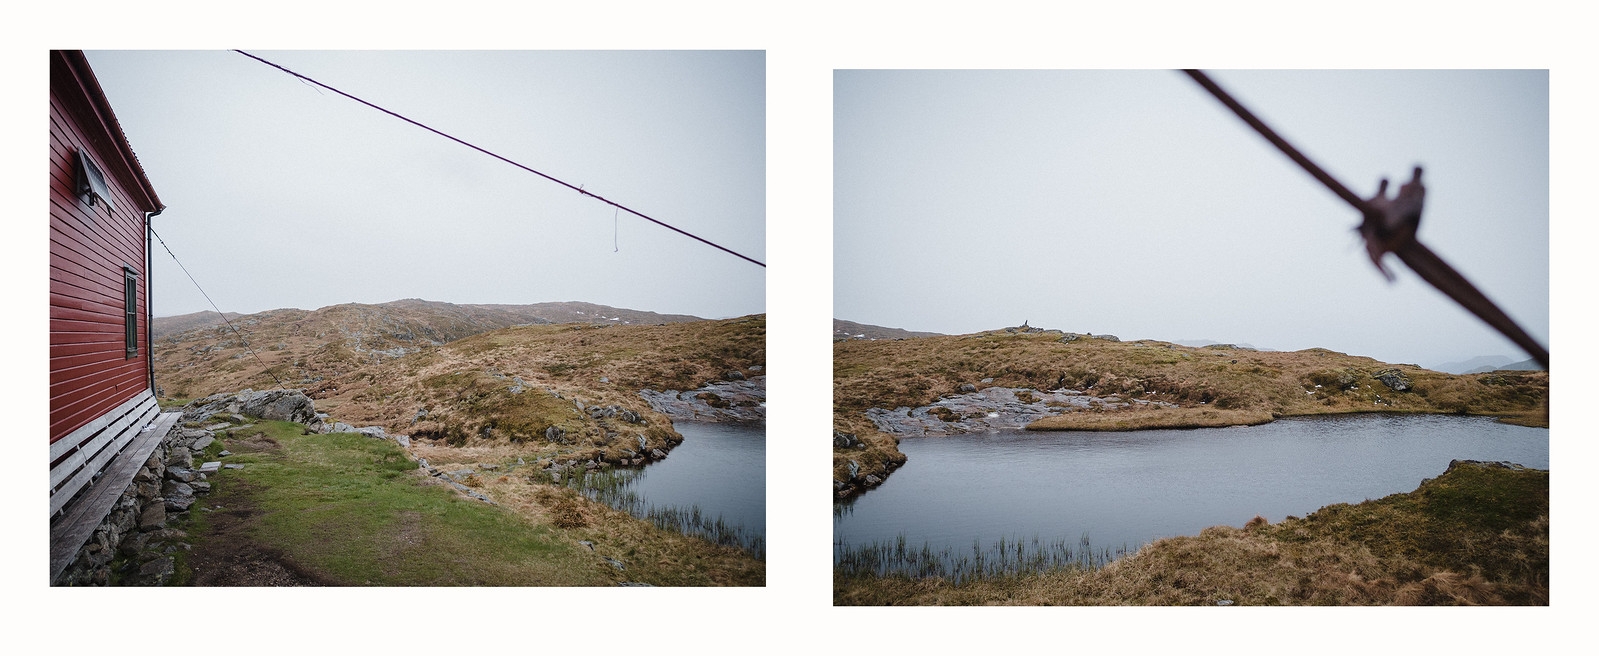 Diptych showing a side of a hut and the pond next to it.